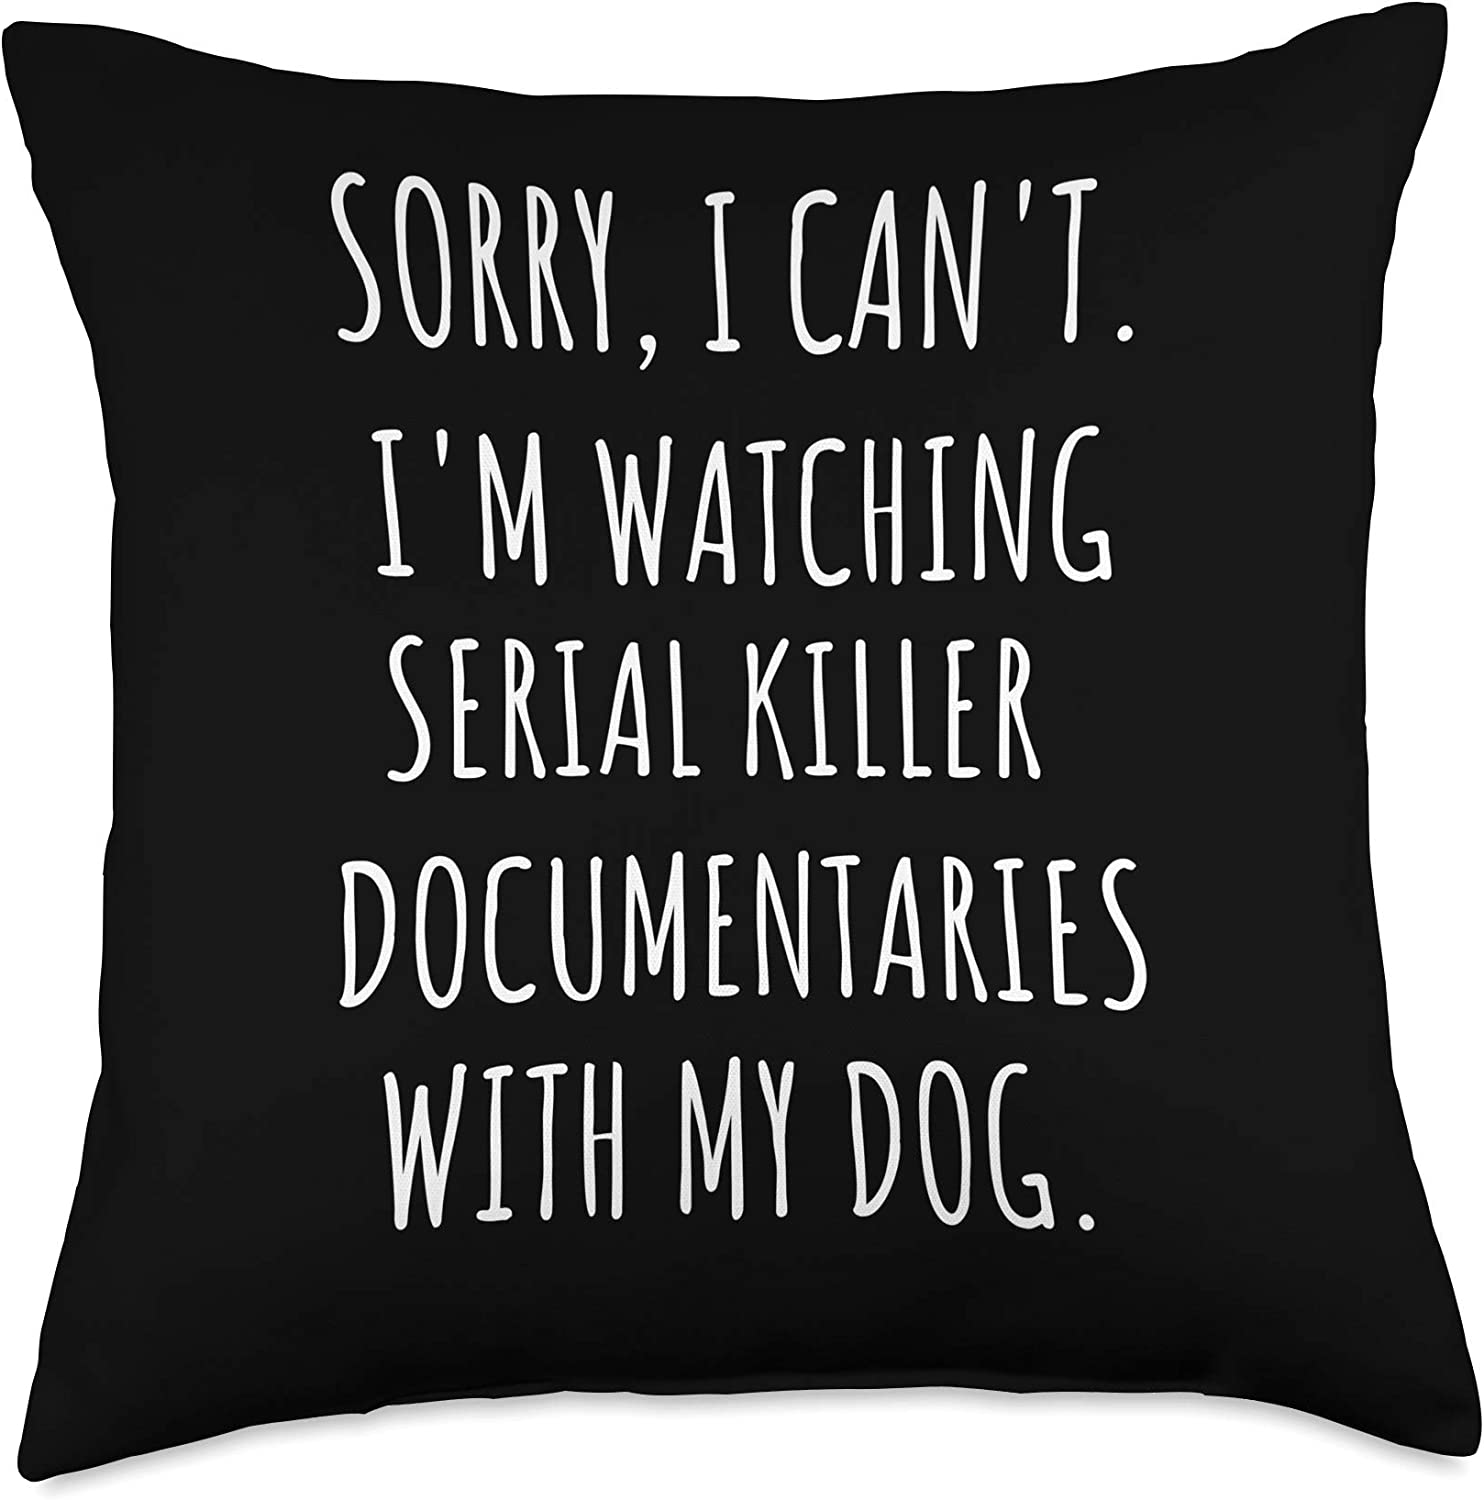 Funny True Crime and Dogs Gift for Dog Mom or Dad Sorry I Can't I'm Watching Serial Killer with My Dog Throw Pillow, 18x18, Multicolor